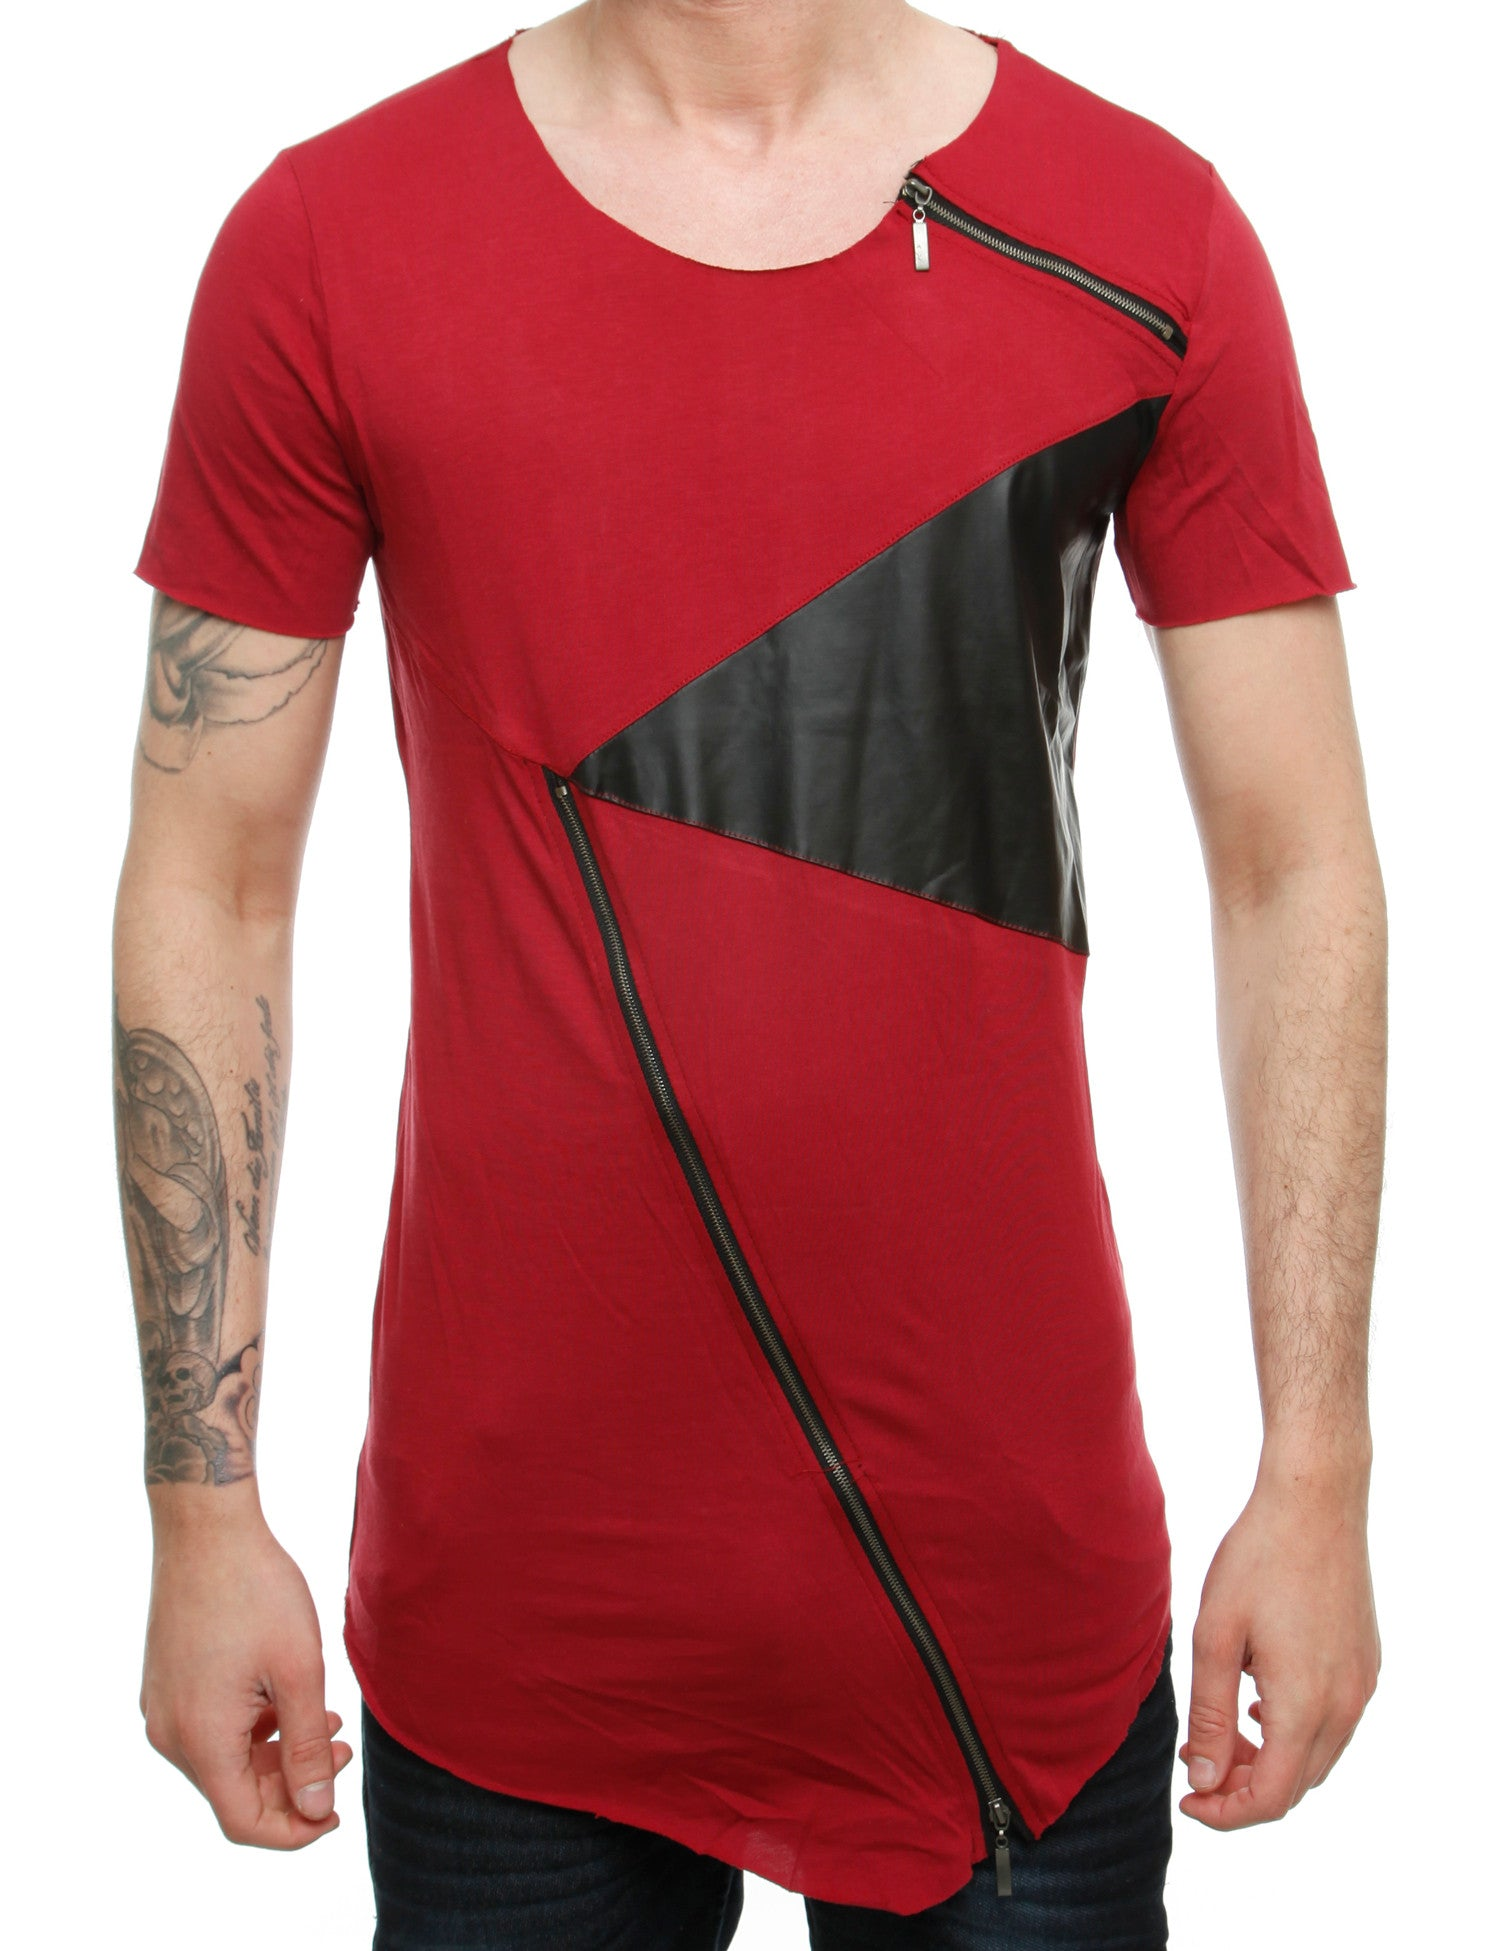 Amica T-Shirt P1173 Bordo Red